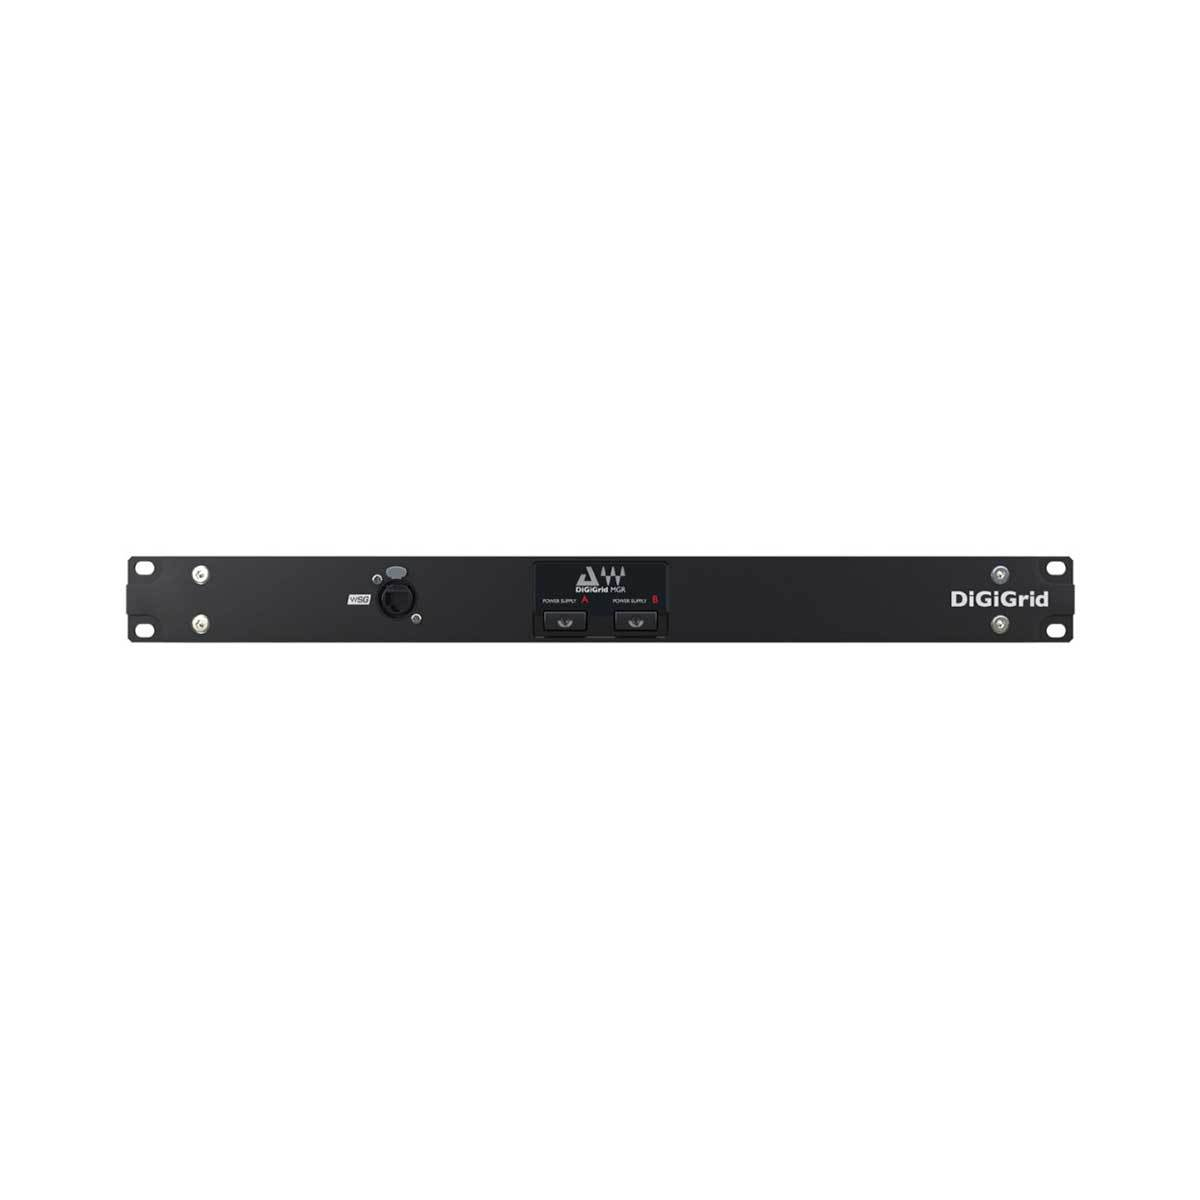 DSP Hardware - DiGiGrid MGR Rackmount Quad MADI BNC To SoundGrid Network With 4 MADI Ports. 256 I/O